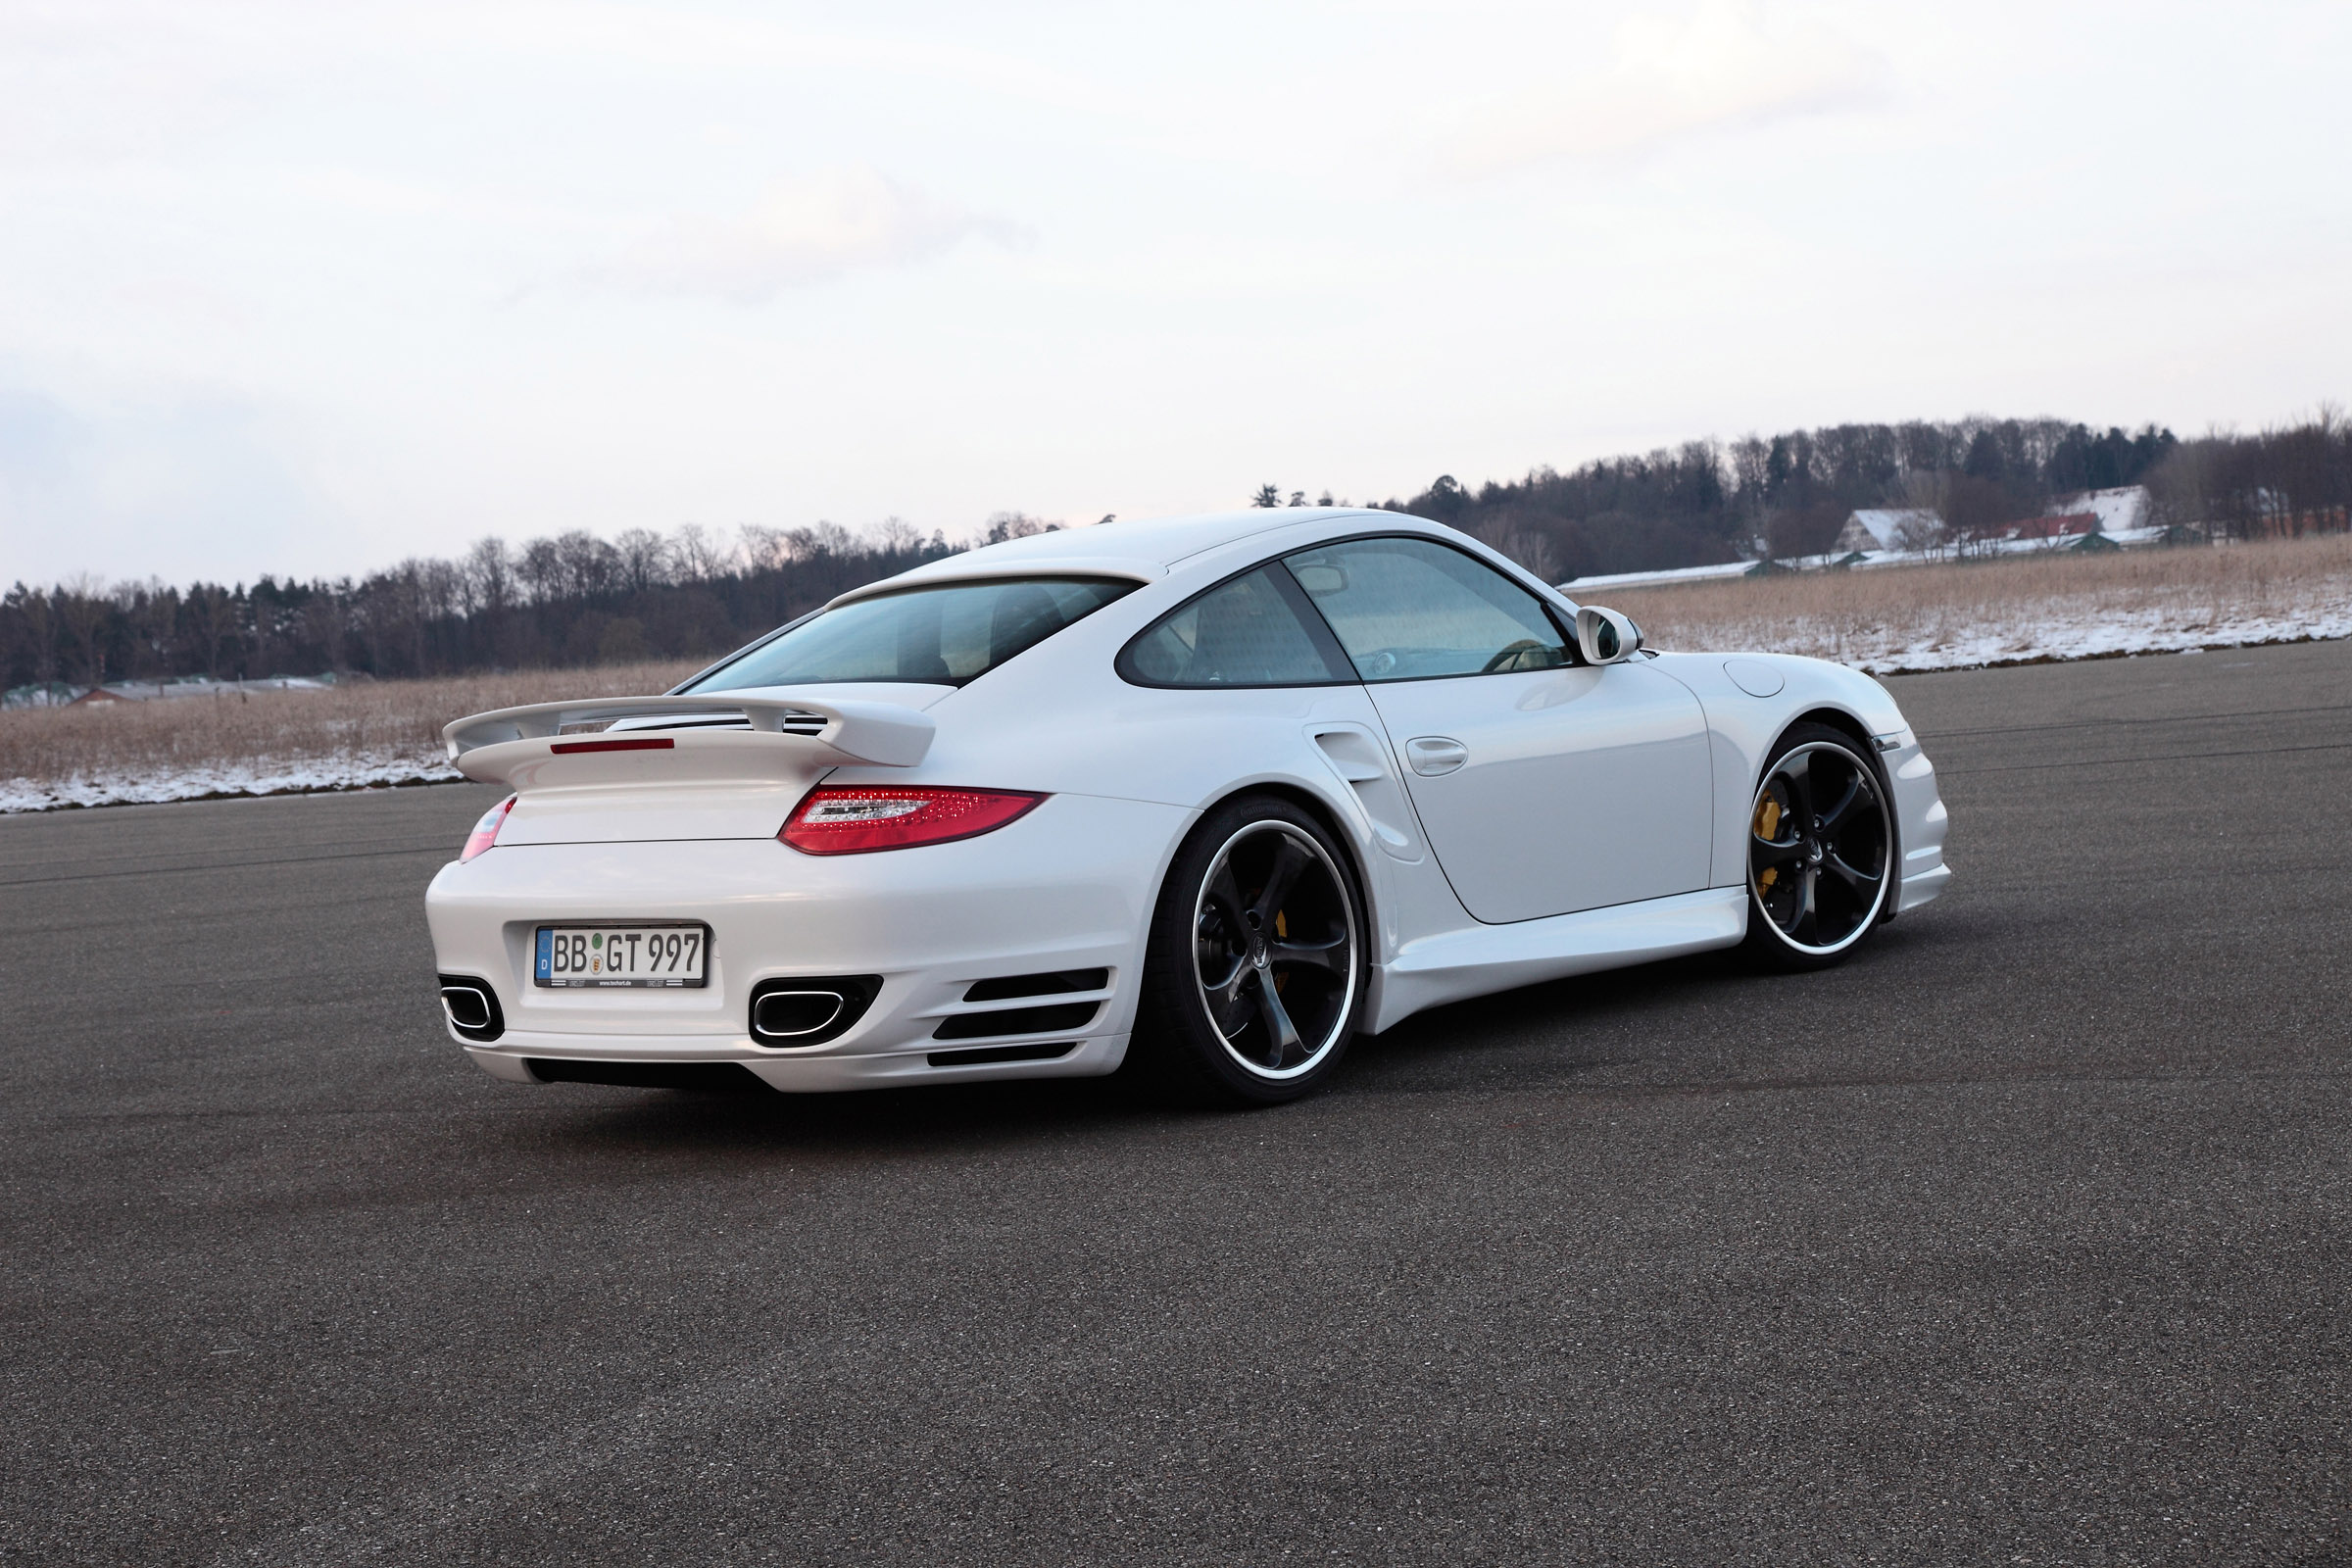 2010 Techart Porsche 911 Turbo S Boosted By New Power Kit